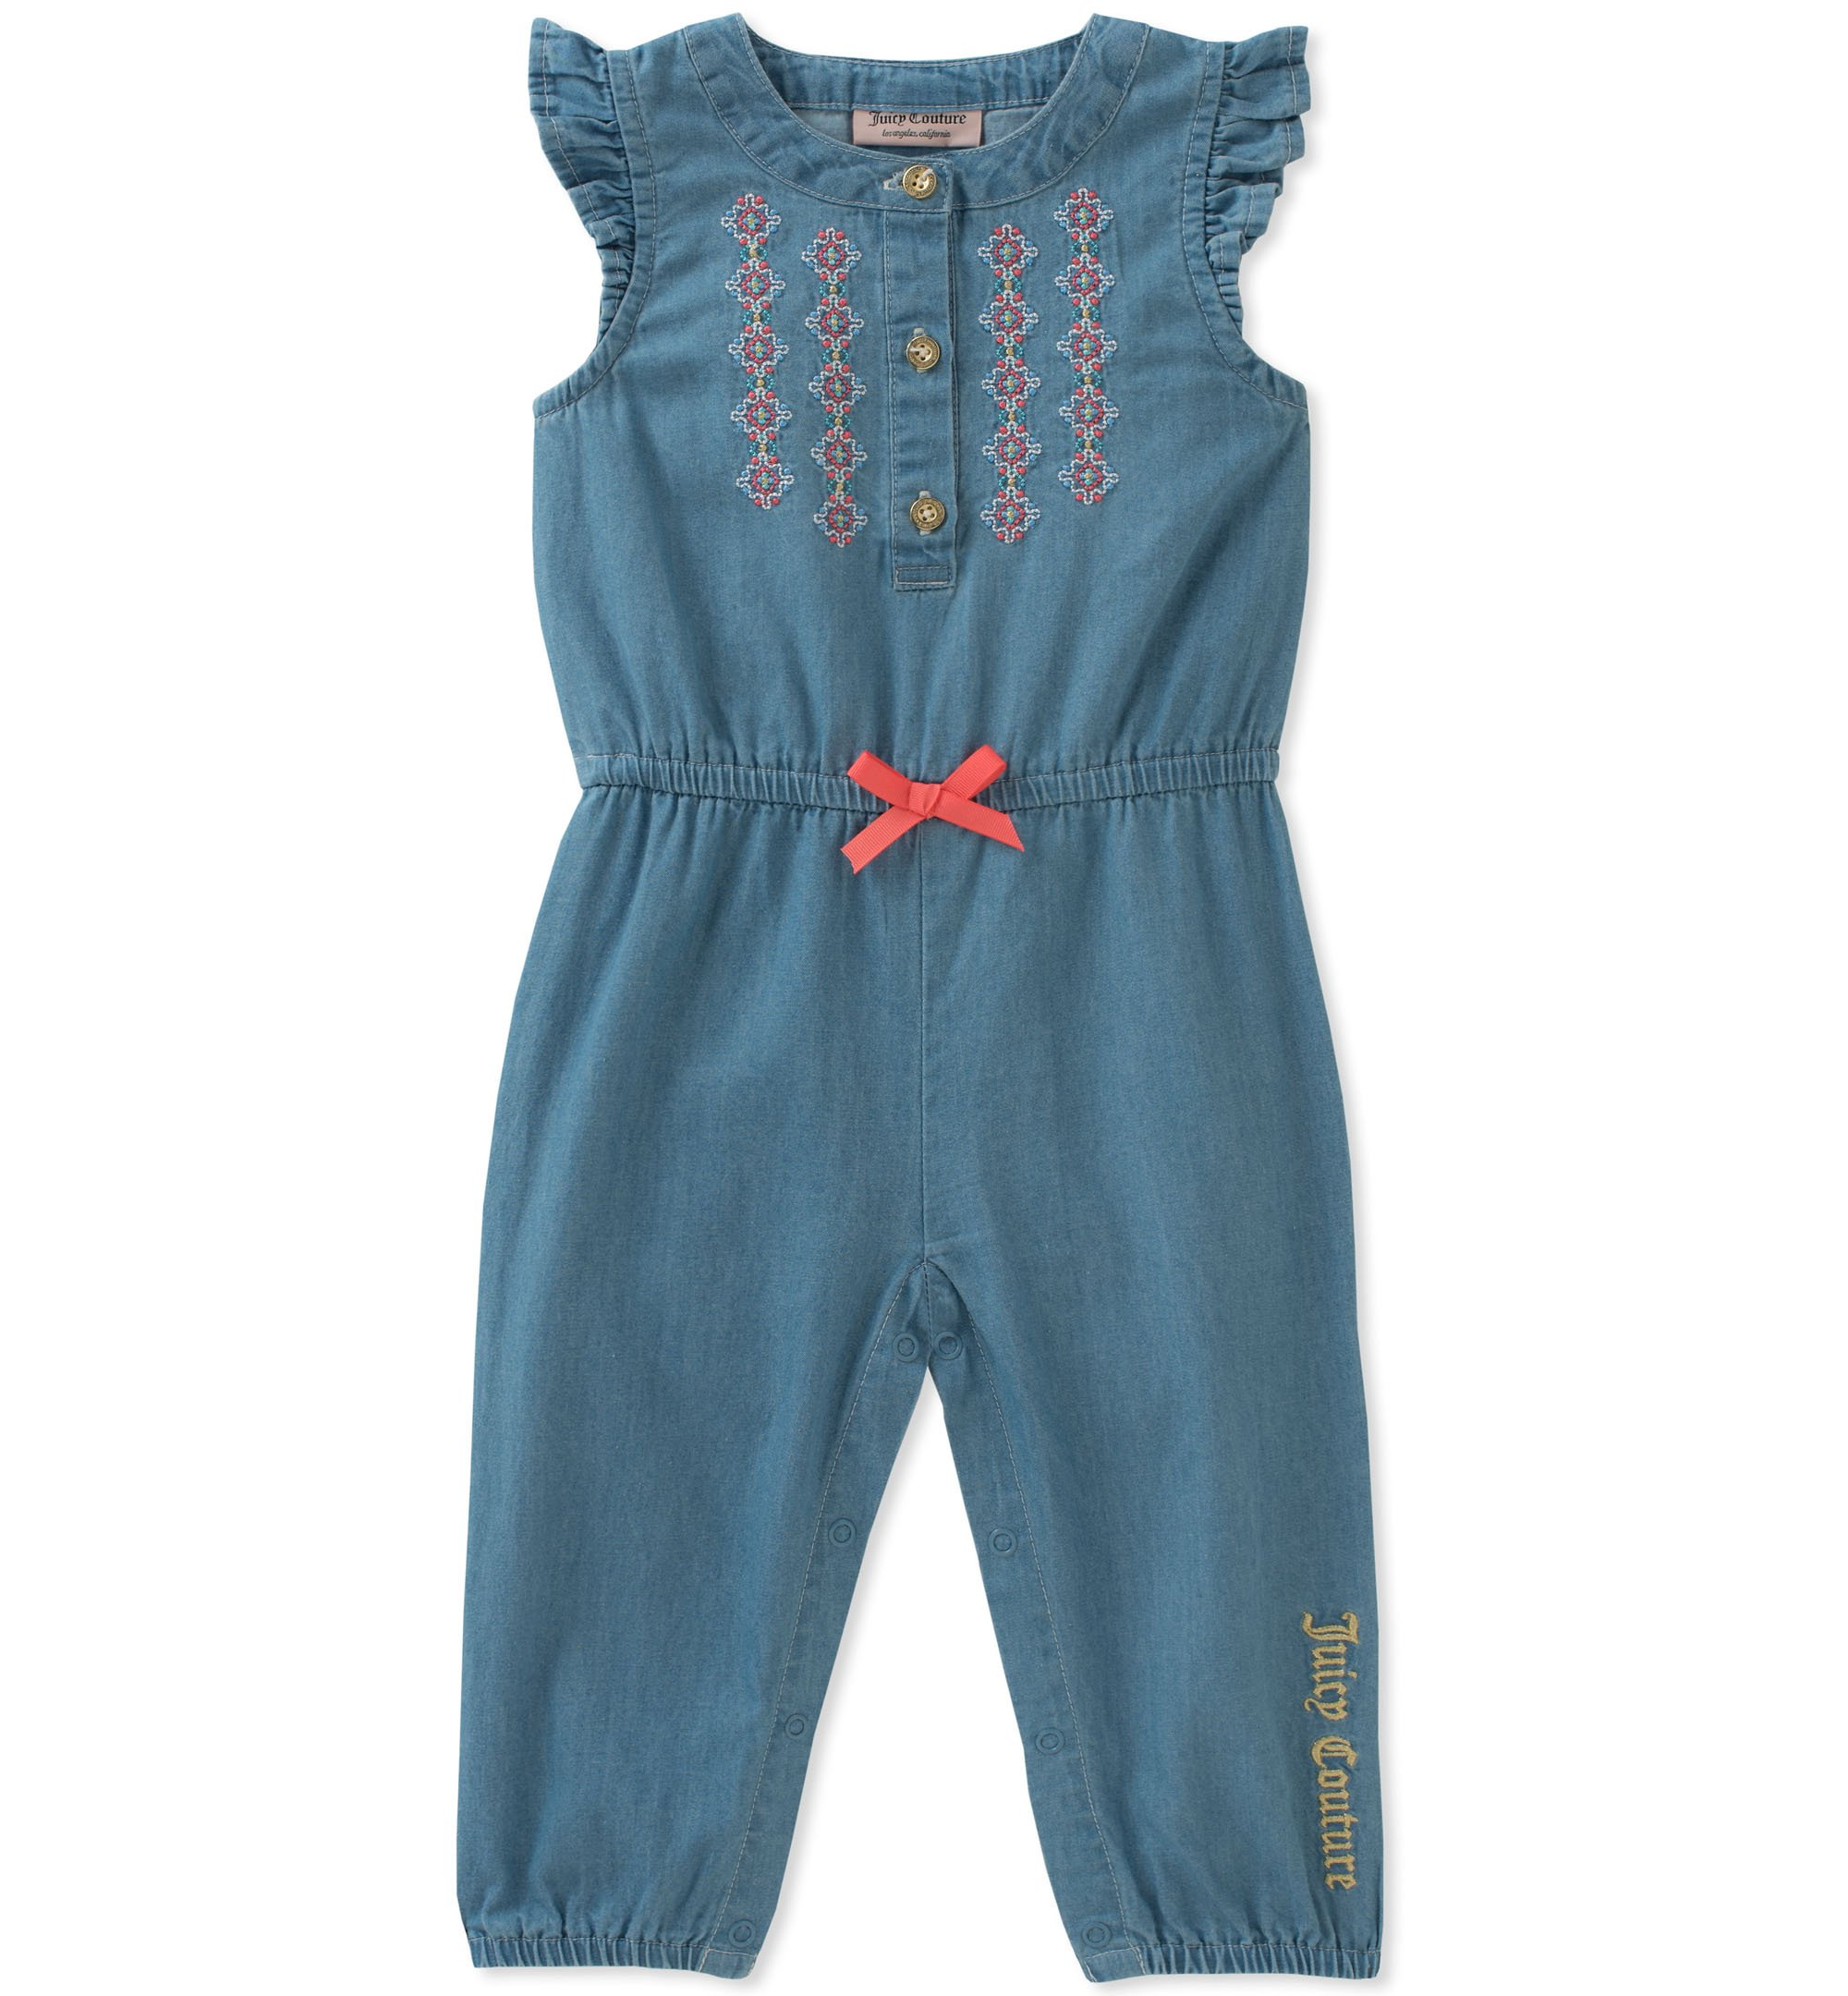 Juicy Couture Baby Girls Jumpsuit, Blue, 18M